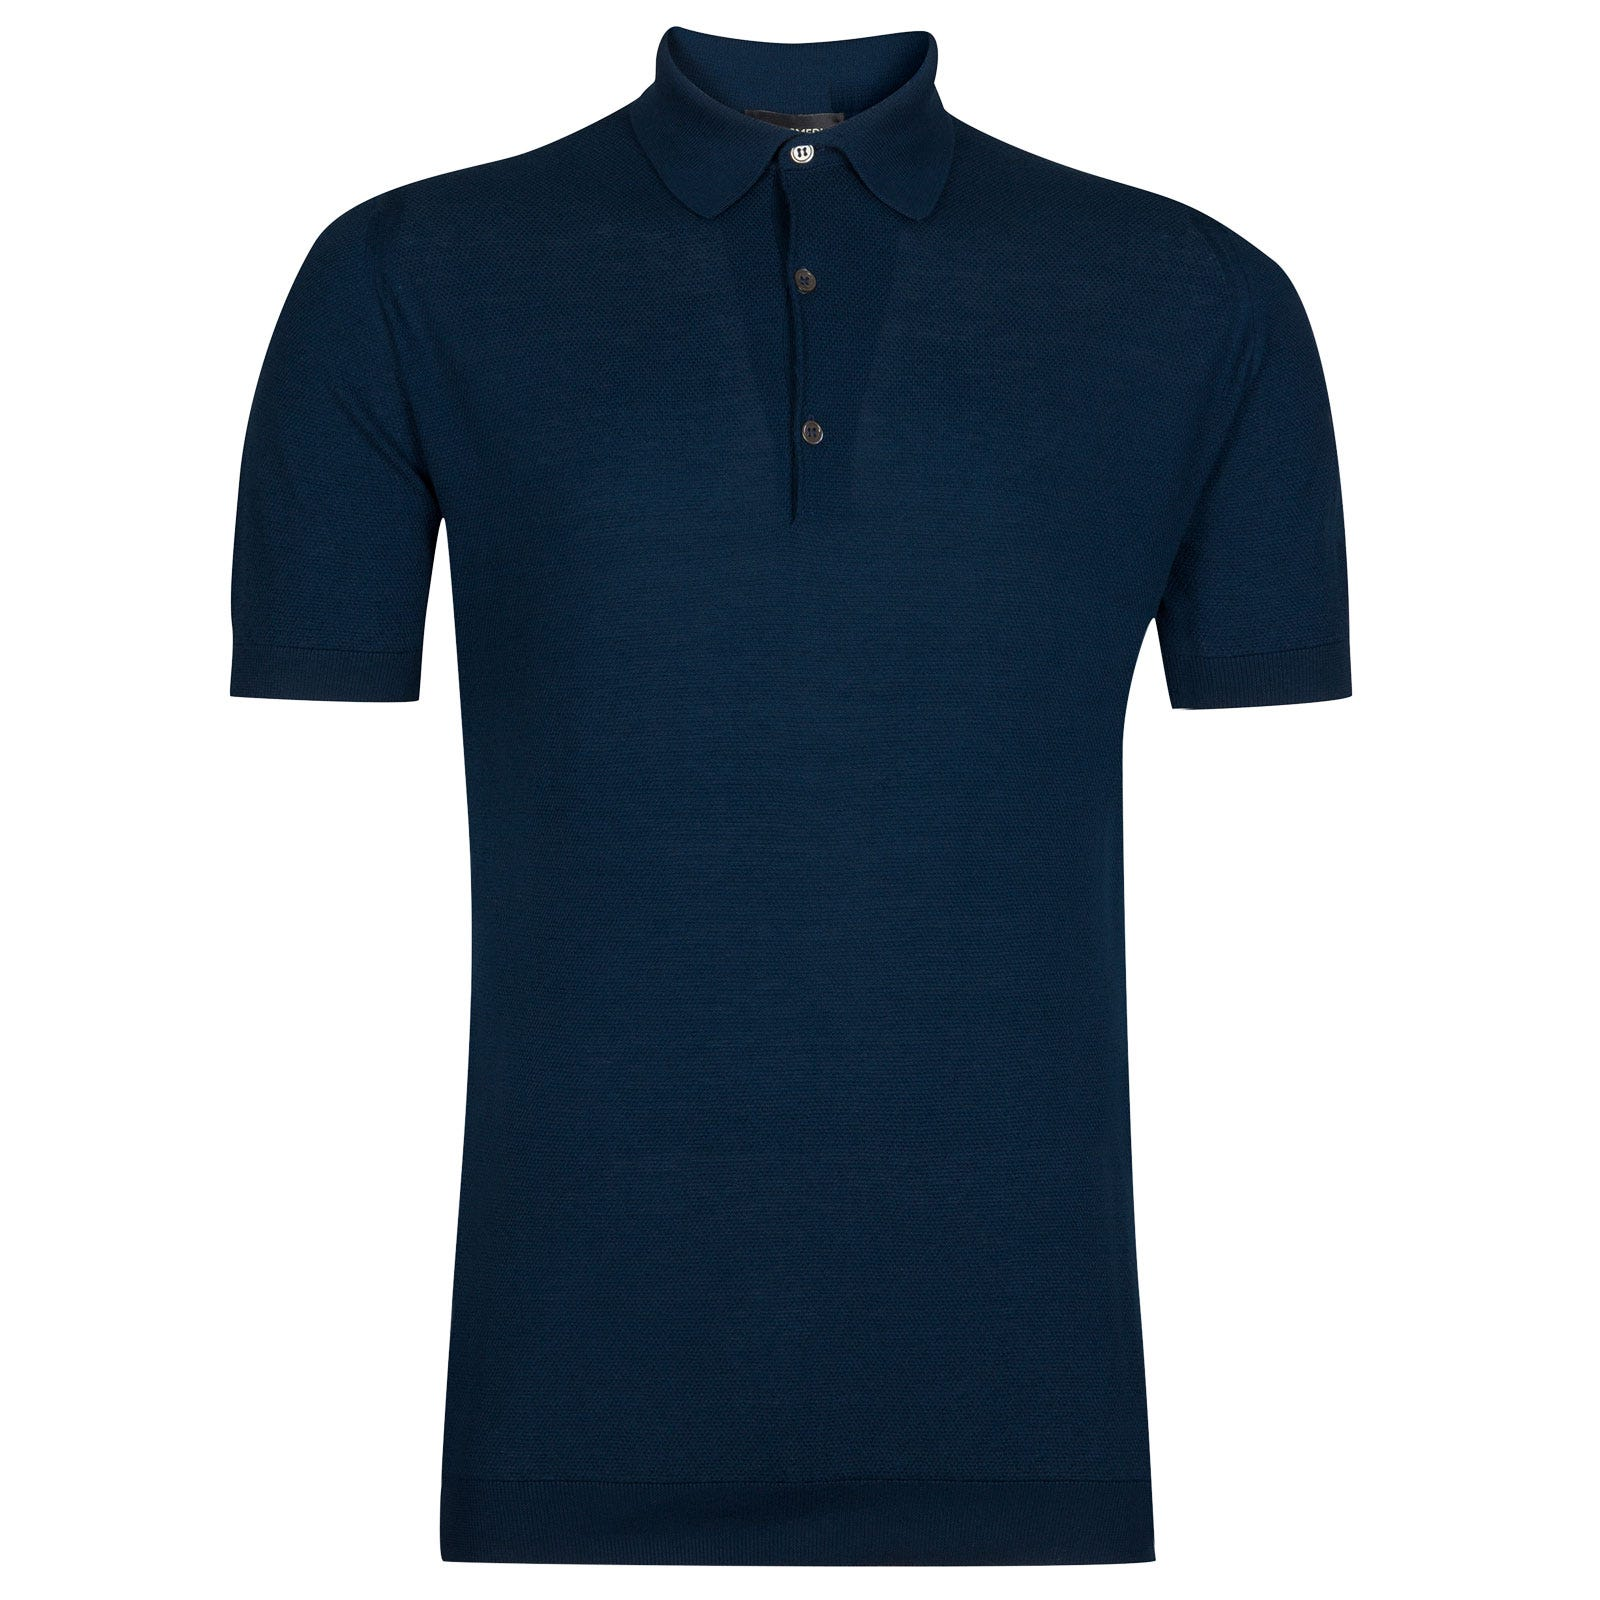 John Smedley roth Sea Island Cotton Shirt in Indigo-XL